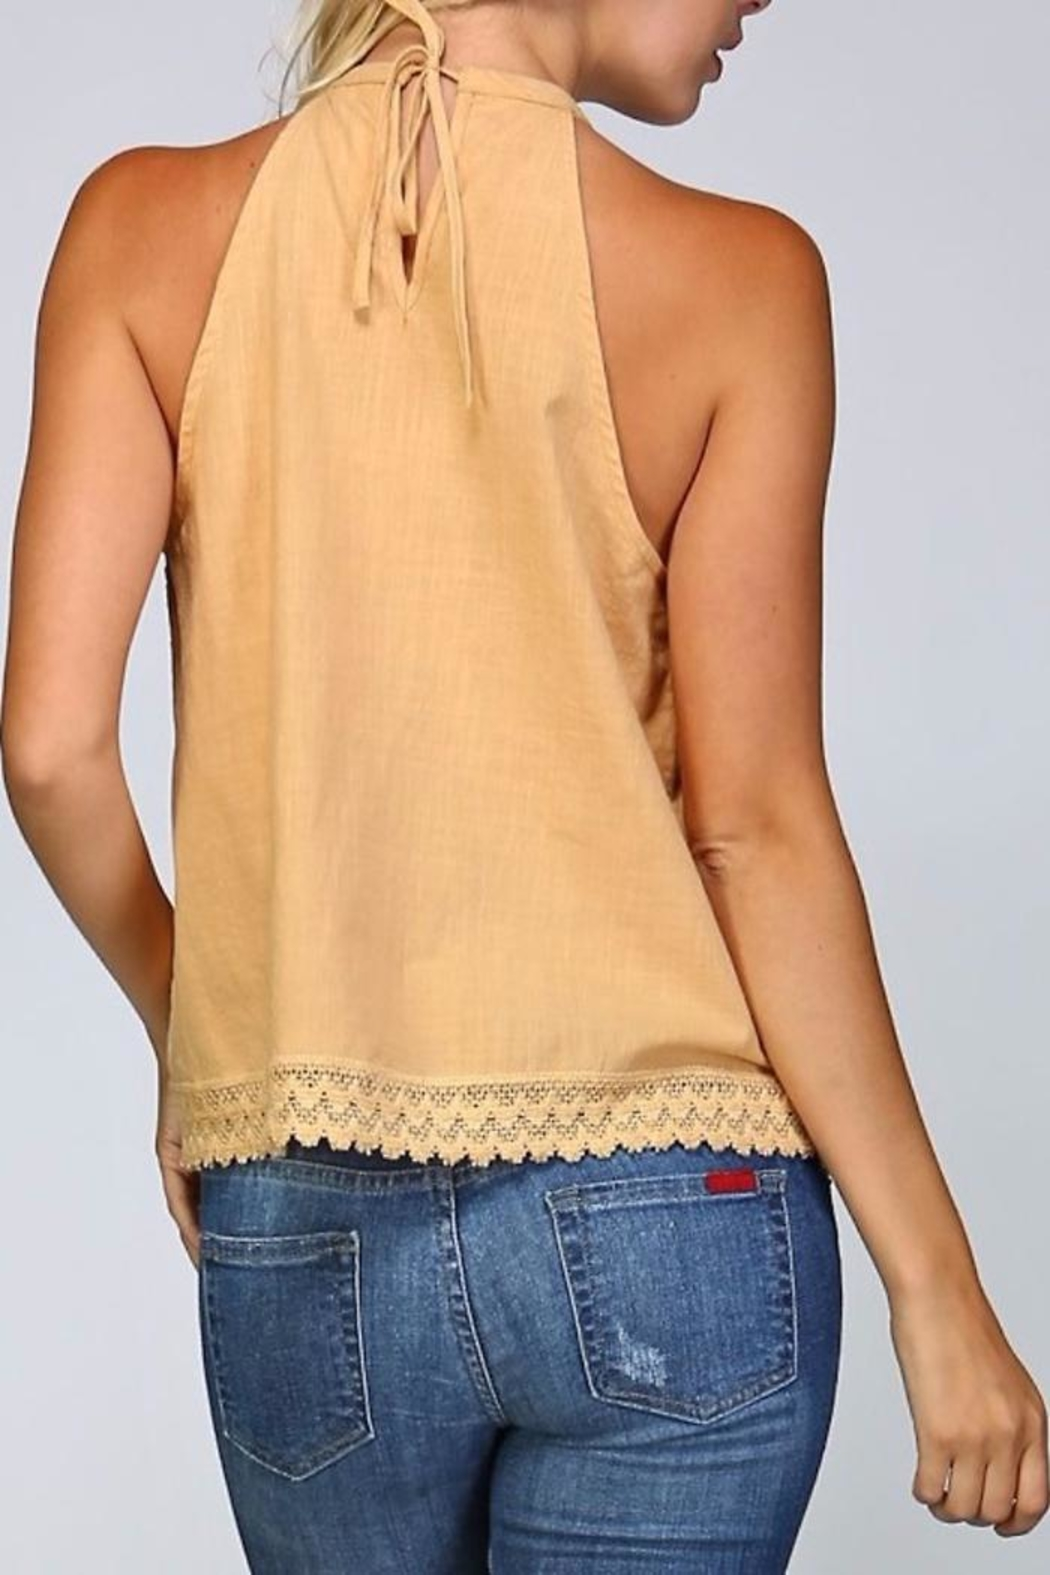 People Outfitter All Cotton Top - Side Cropped Image